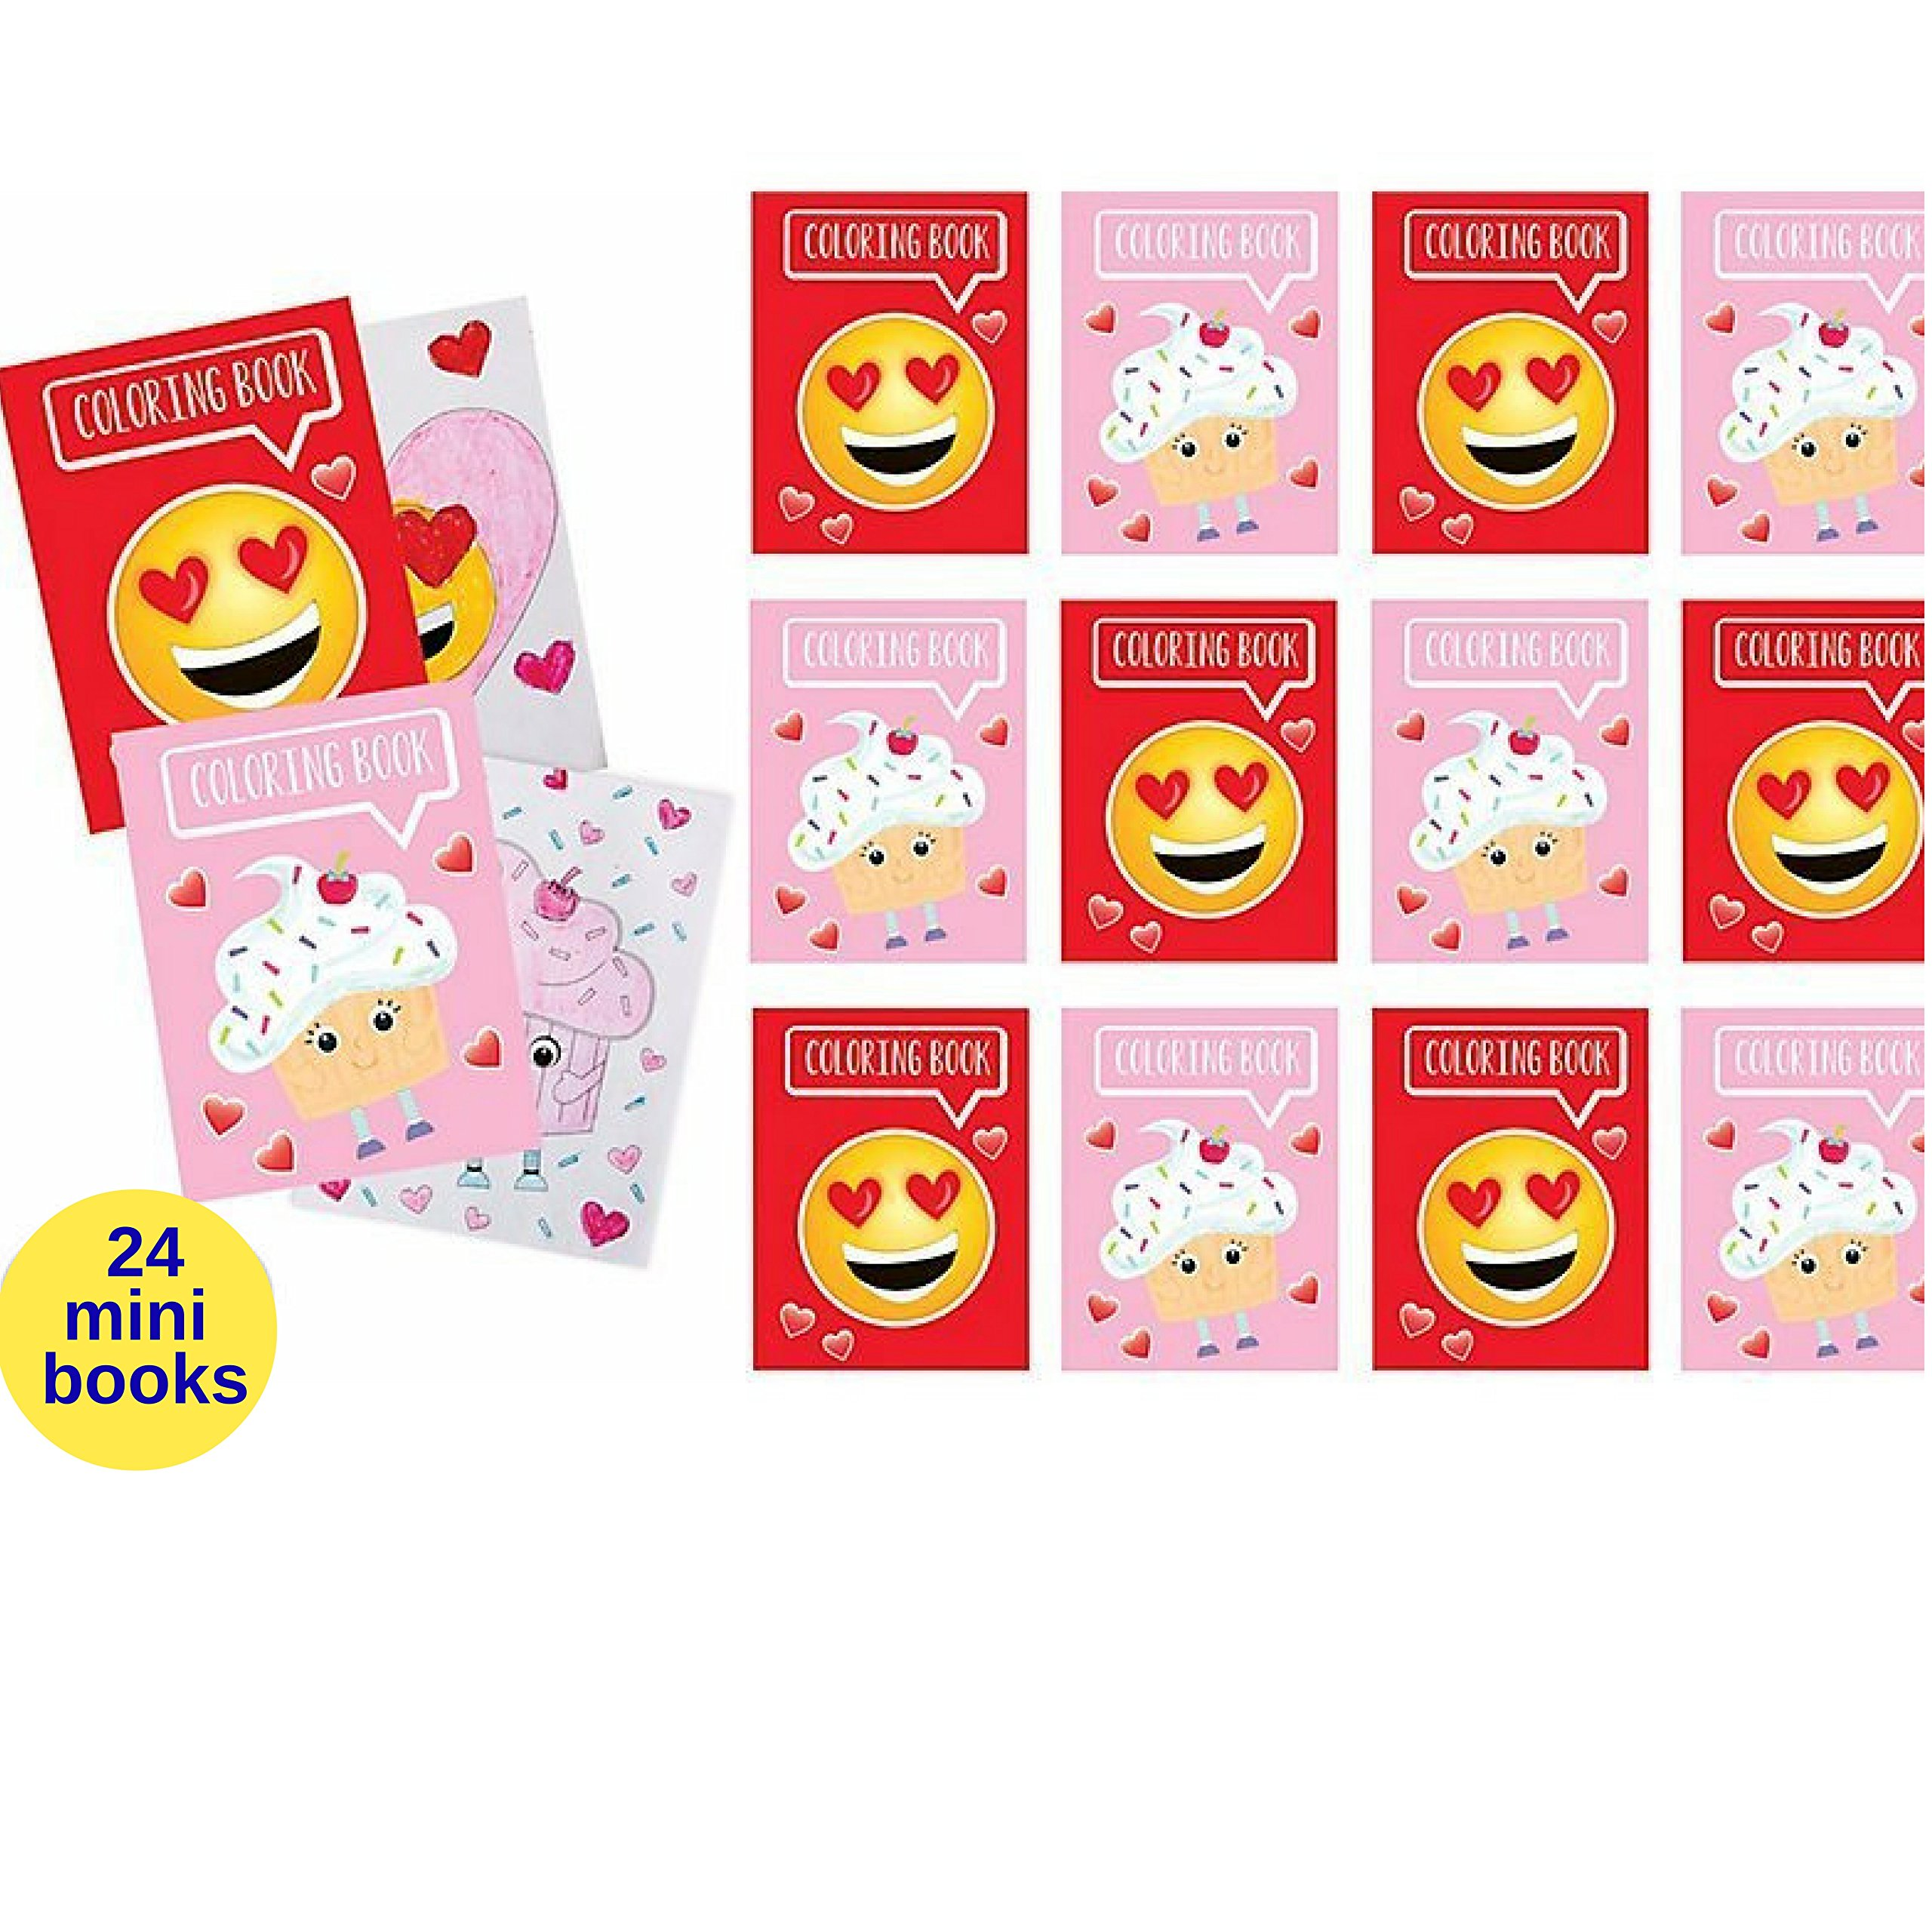 Valentines Emoticon Coloring Pages and Pencils, set of 48 pieces Party Favors by Custom Variety (Image #2)